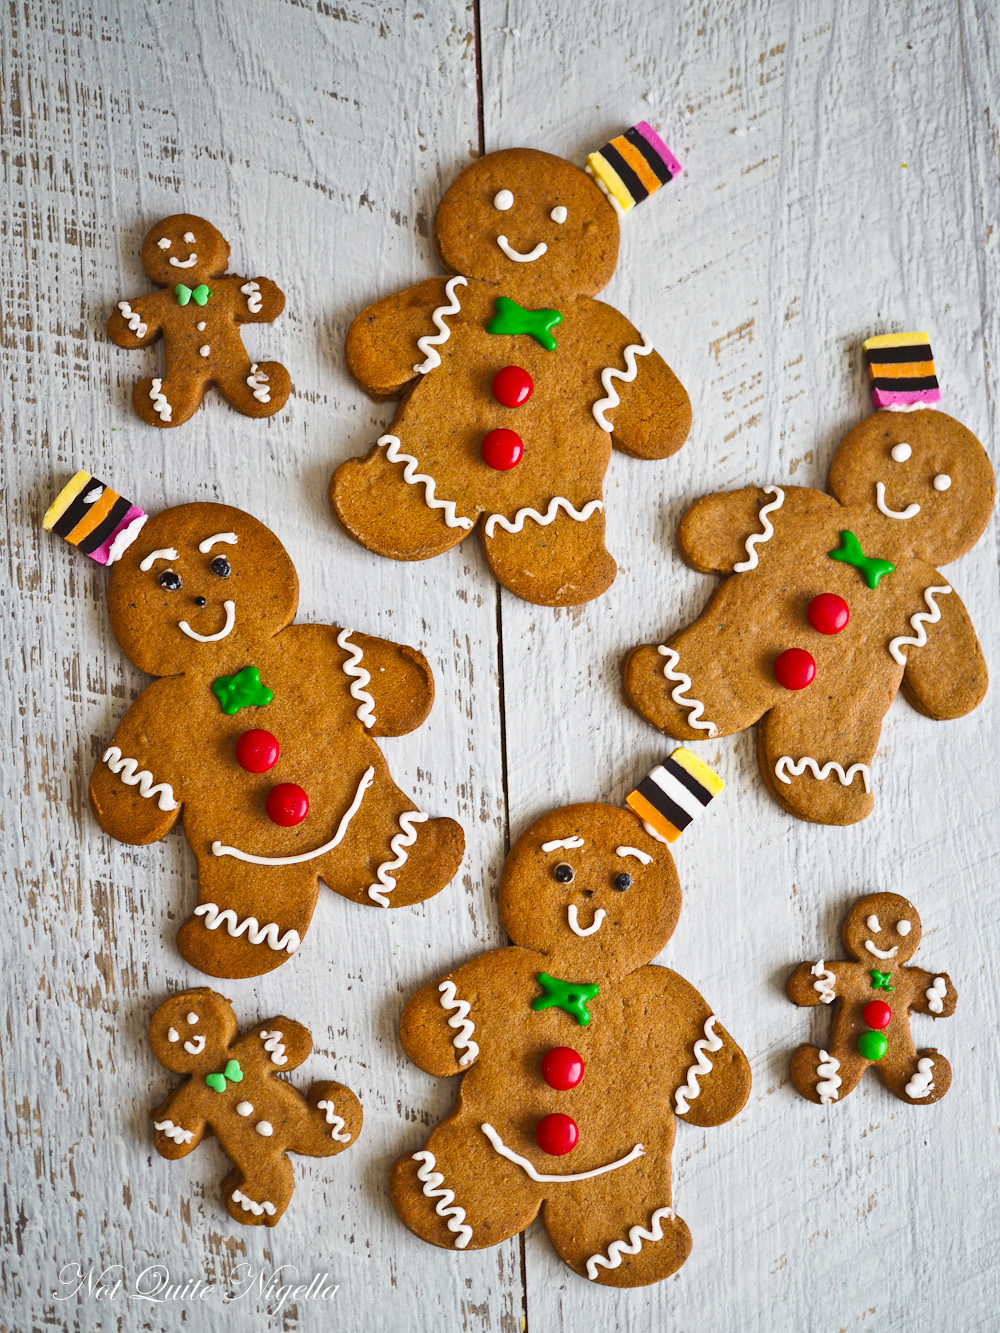 Speculoos gingerbread men